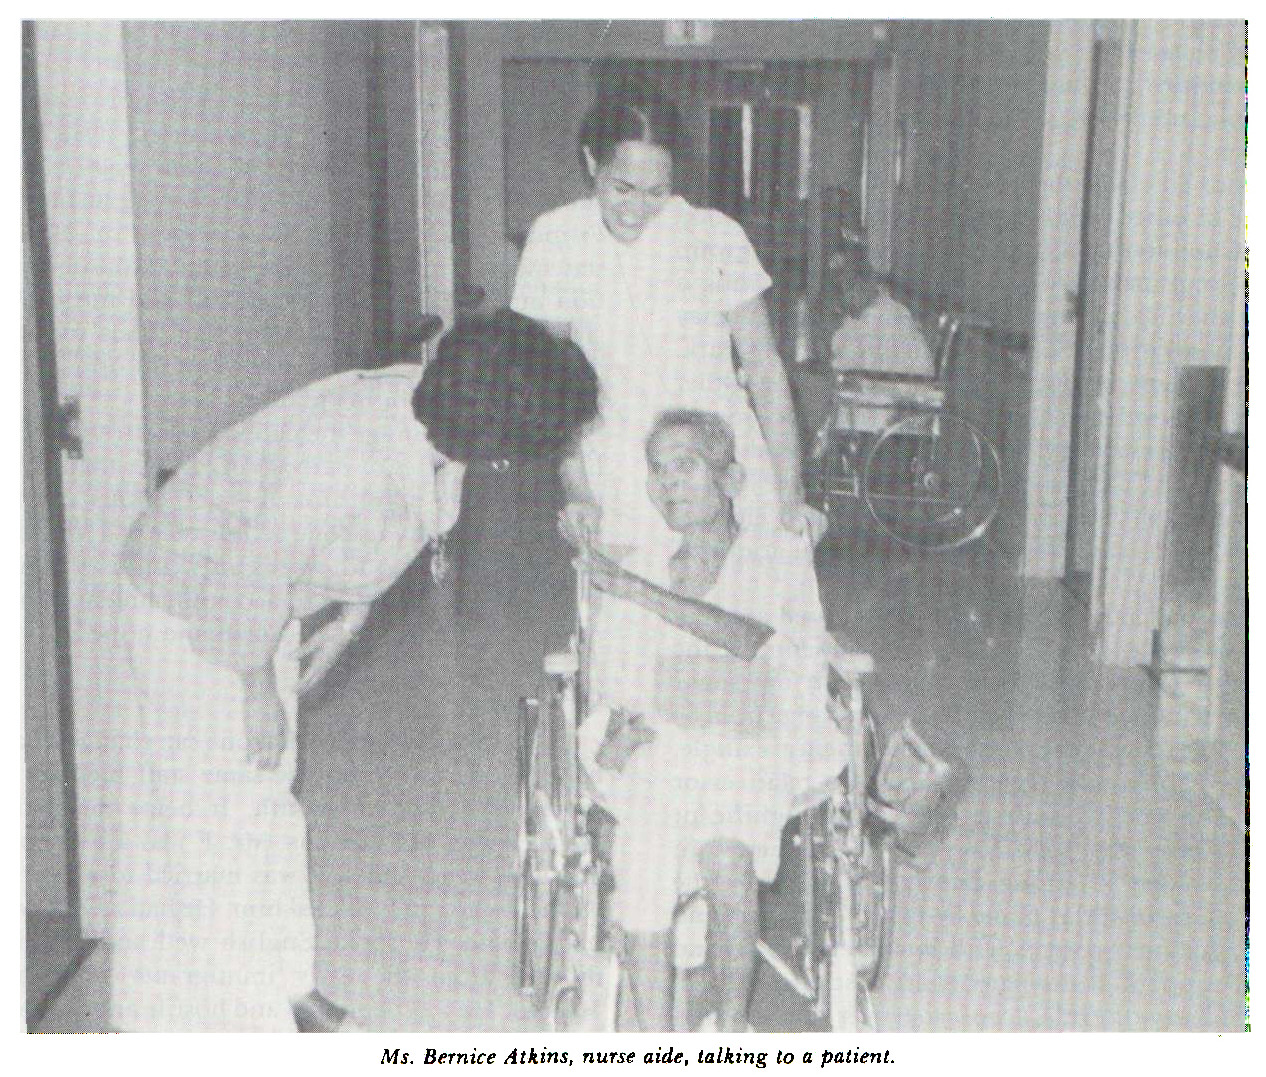 Ms. Bernice Atkins: nurse aide, talking to a patient.